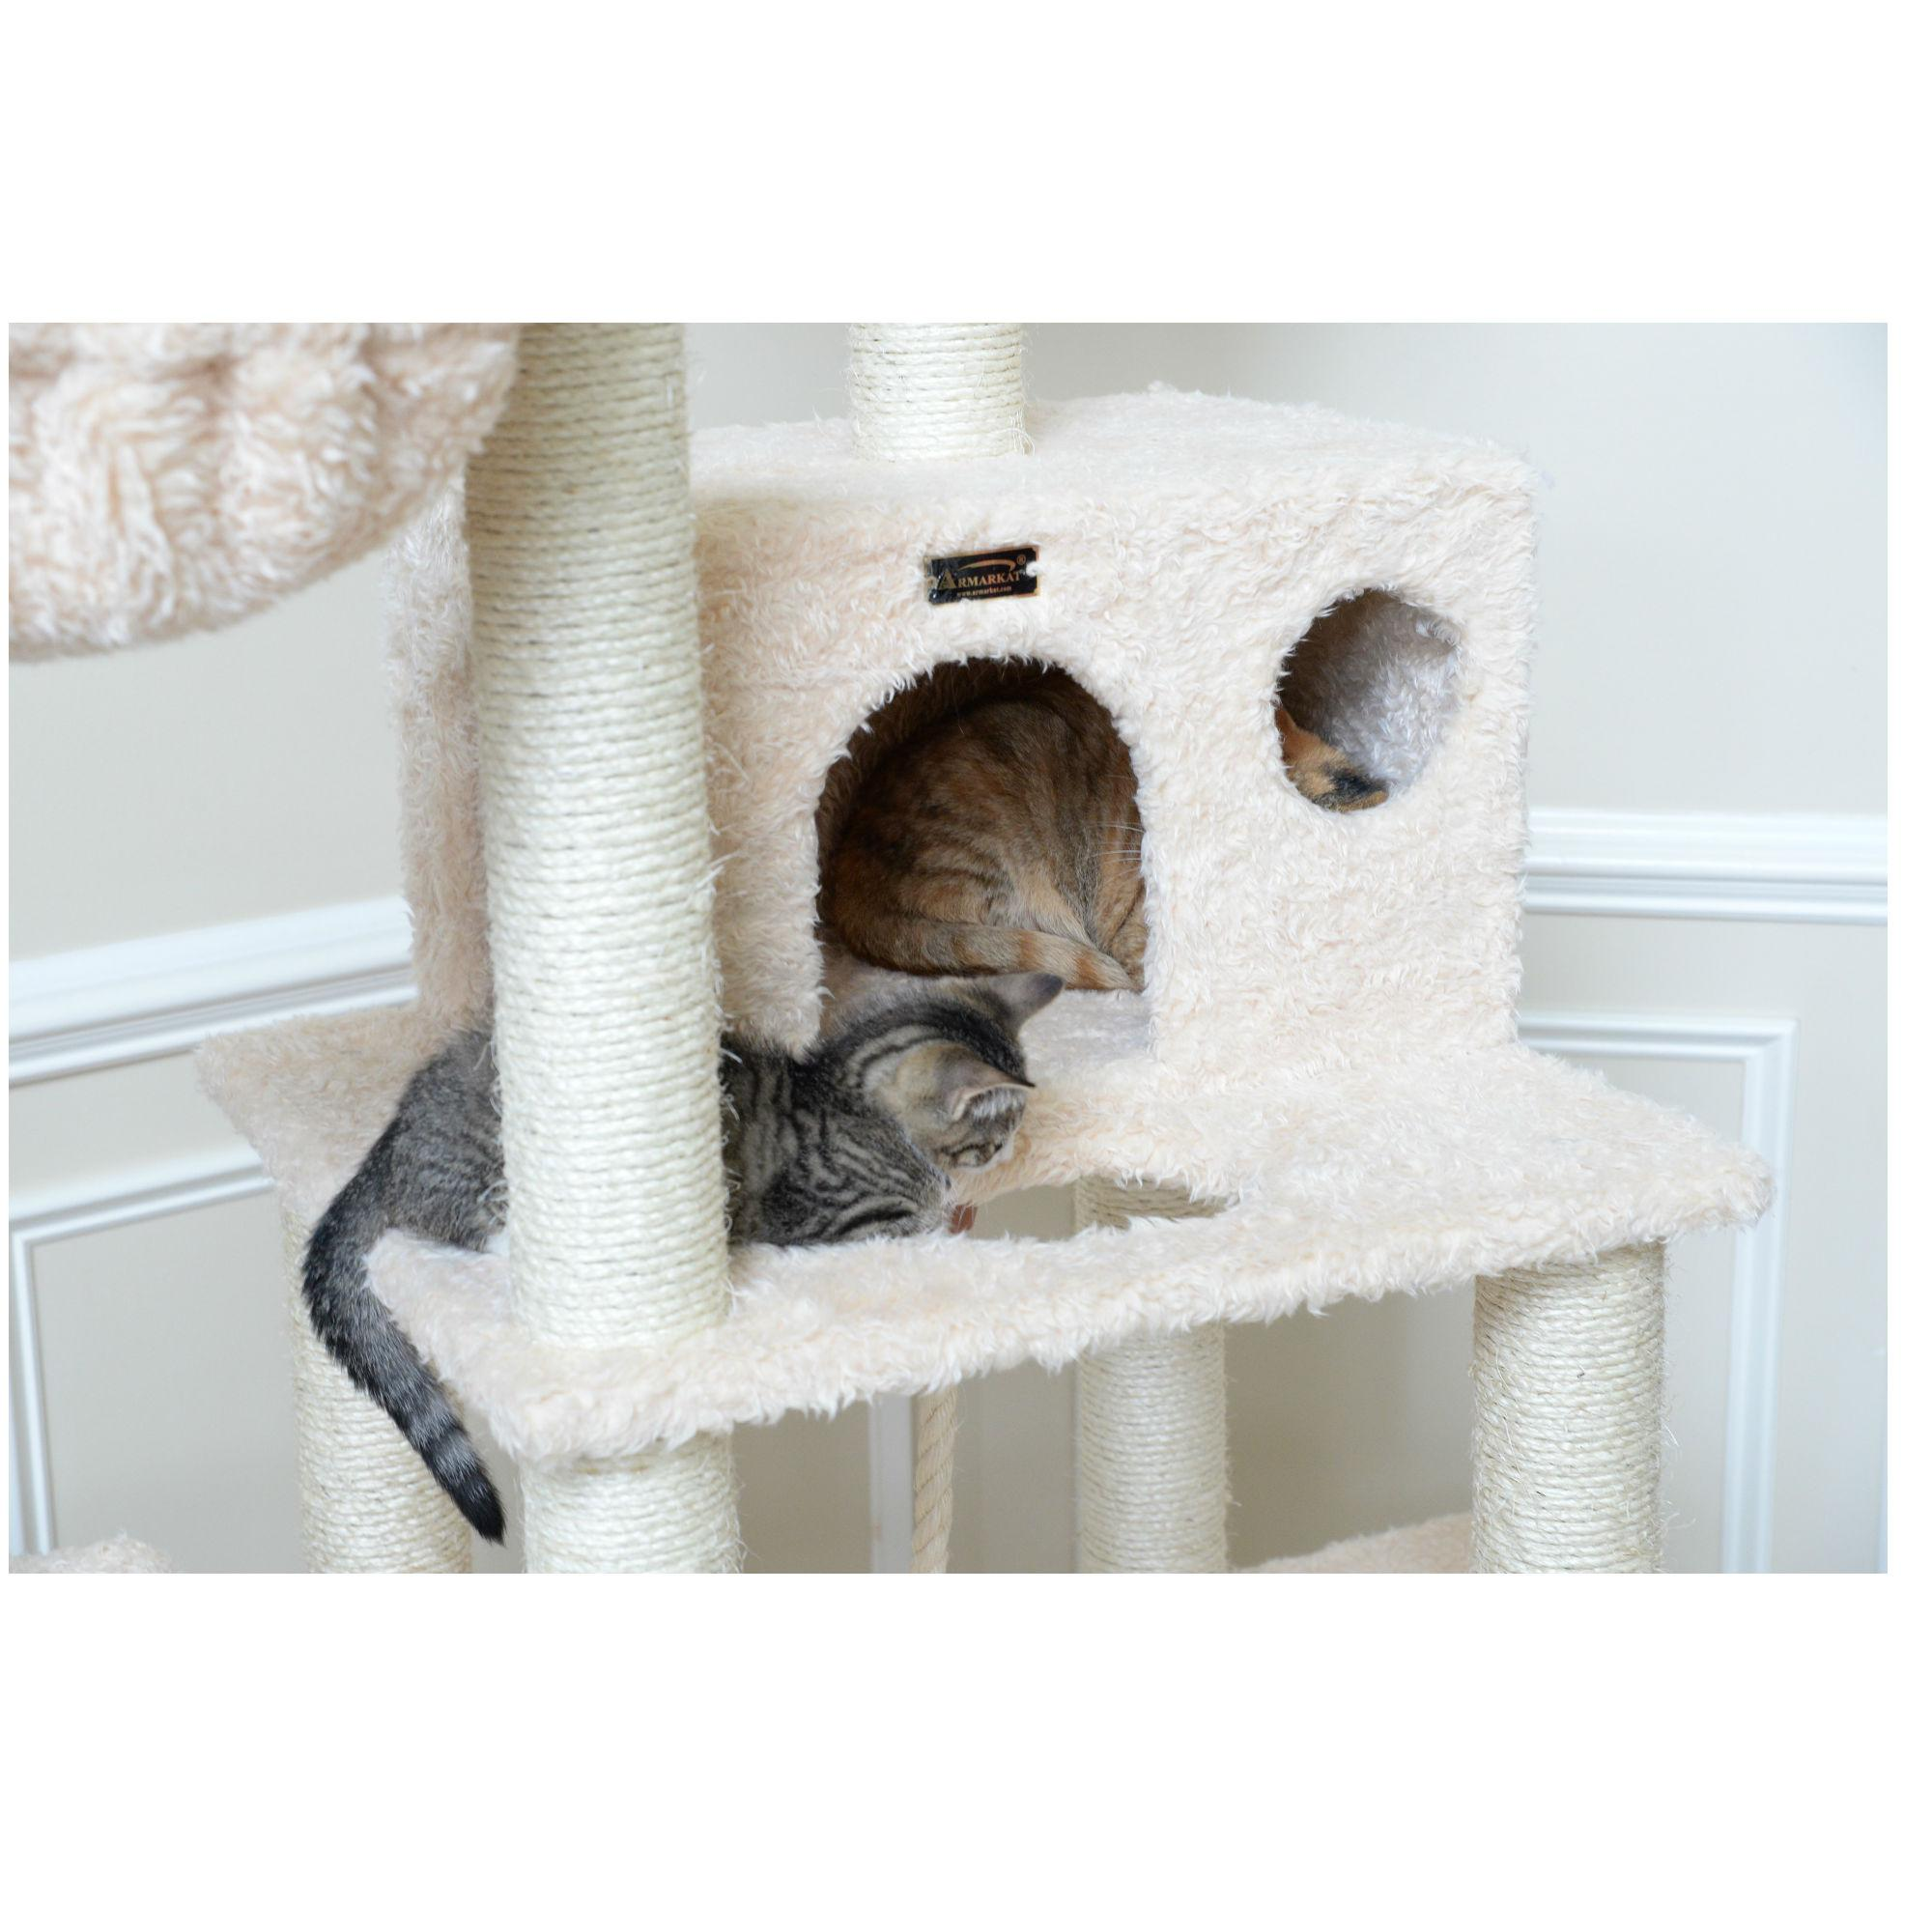 furniture petcostore shop towers level category cat tree en brown animaze scratchers scratching petco center and posts trees